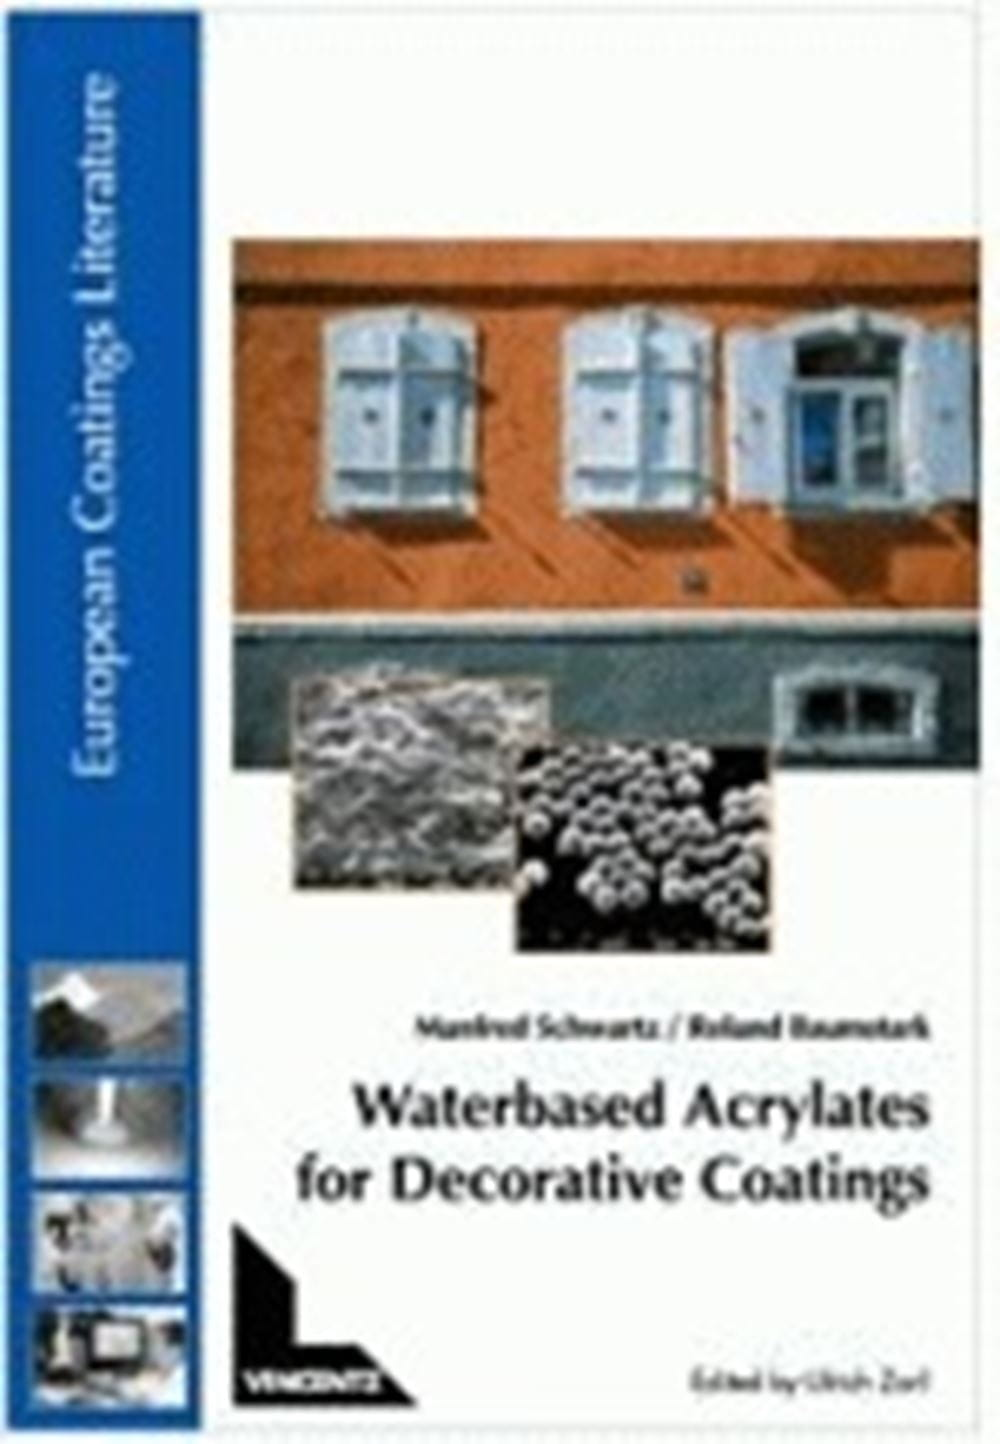 EC Library Waterbased Acrylates for Decorative Coatings